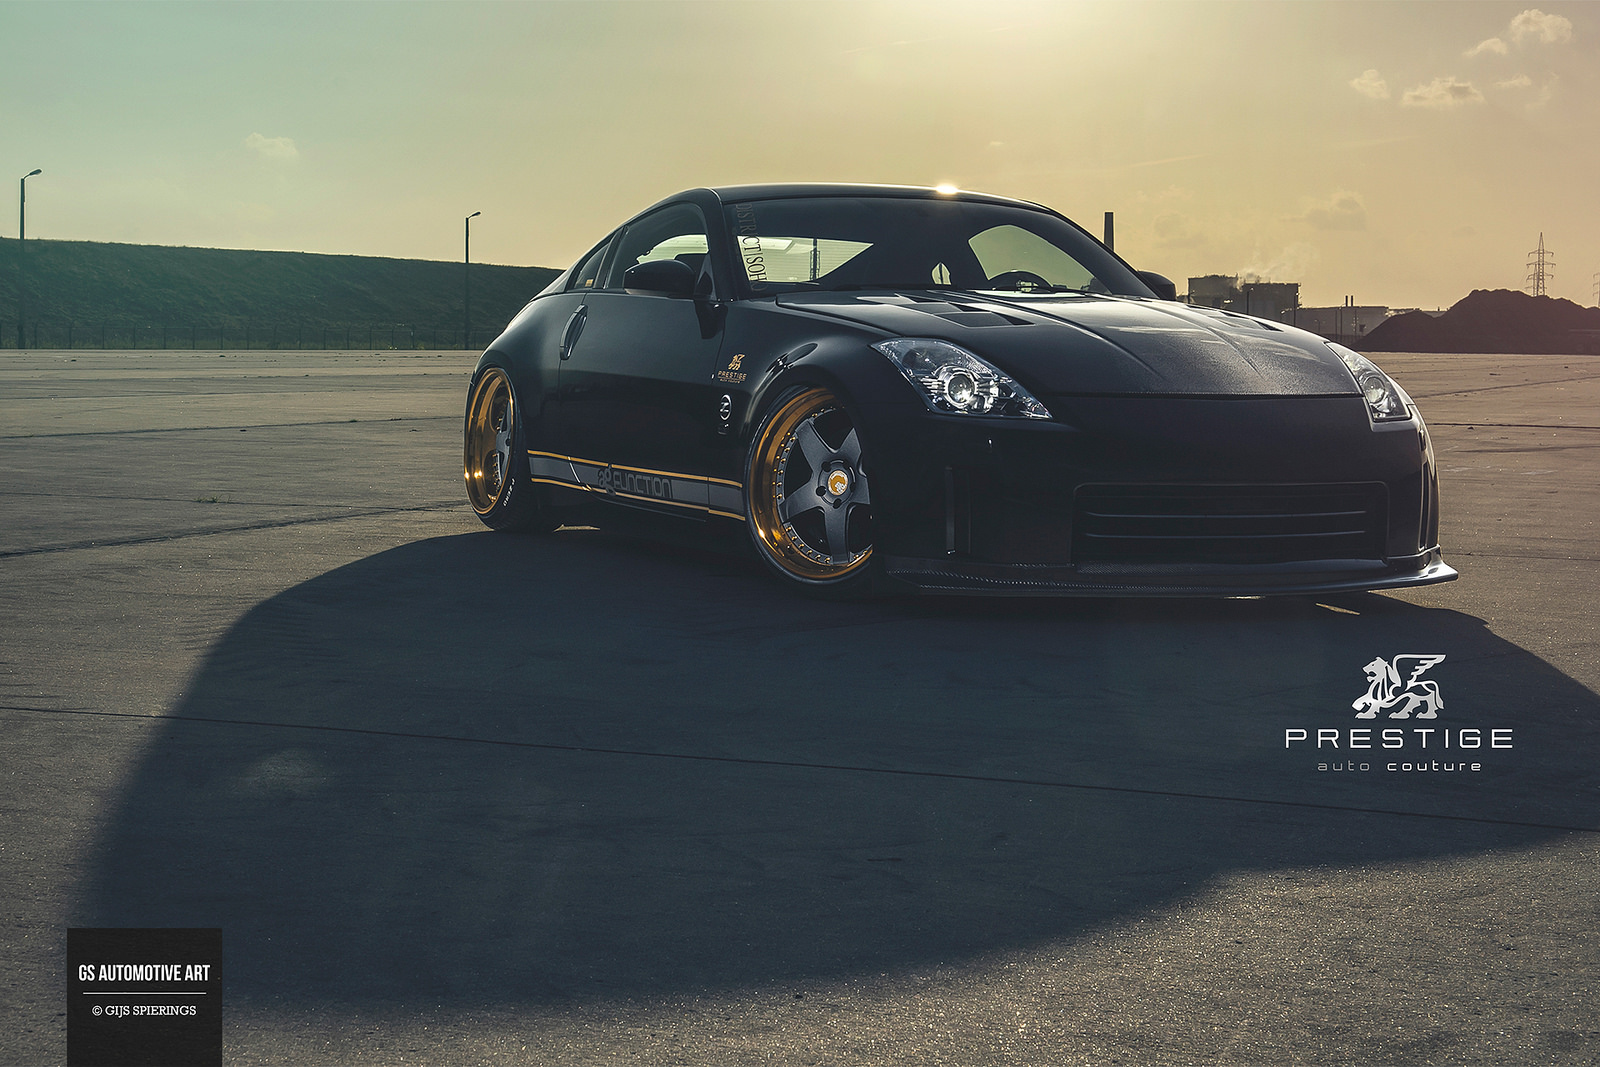 MPPSOCIETY Modified Cars Prestige_auto_couture's Nissan 350z Avant Garde Wheels 01